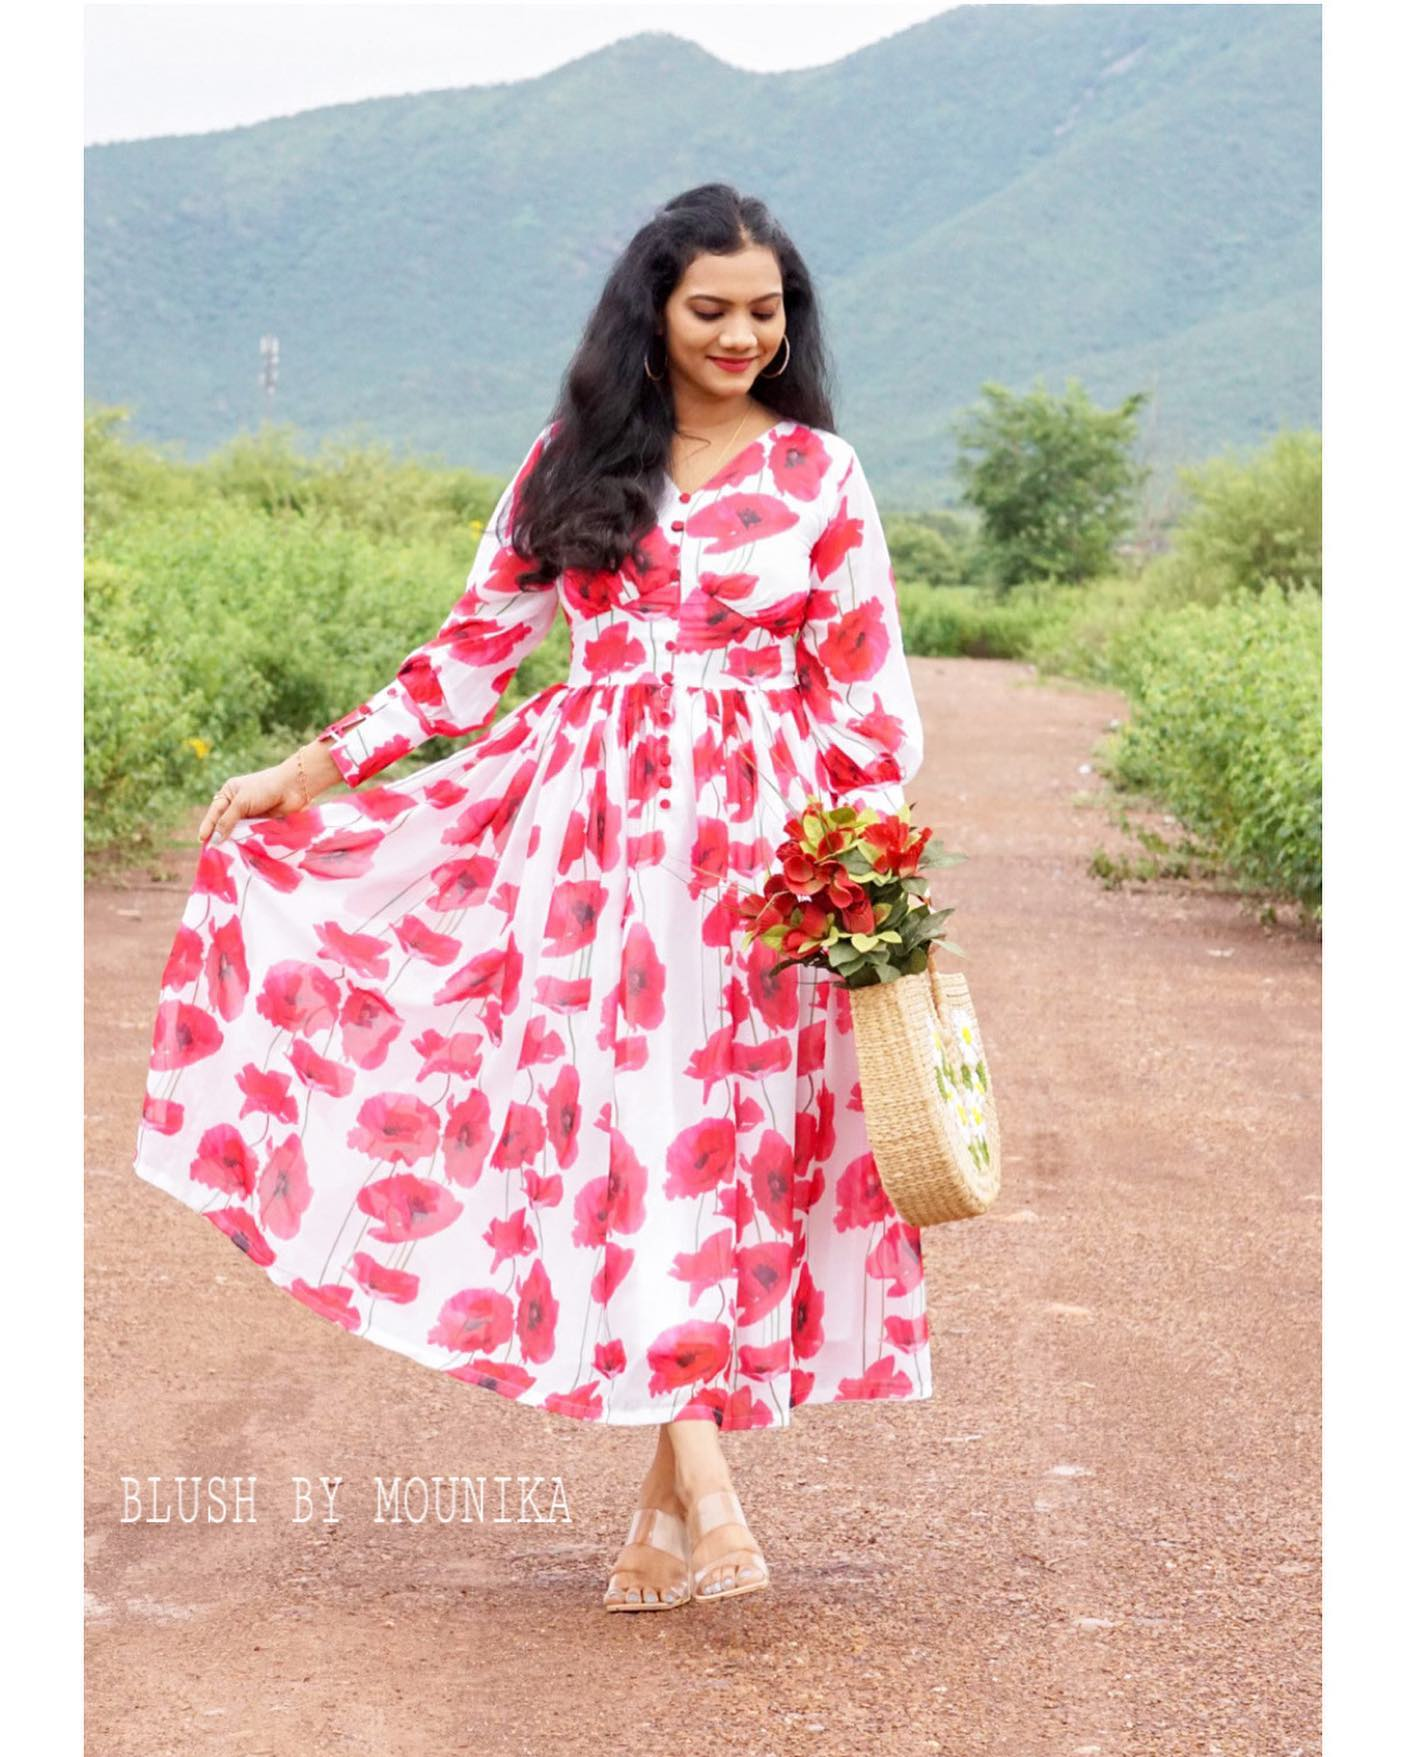 Floral Georgette frock with yoke and sleeve detailing. 2021-08-29